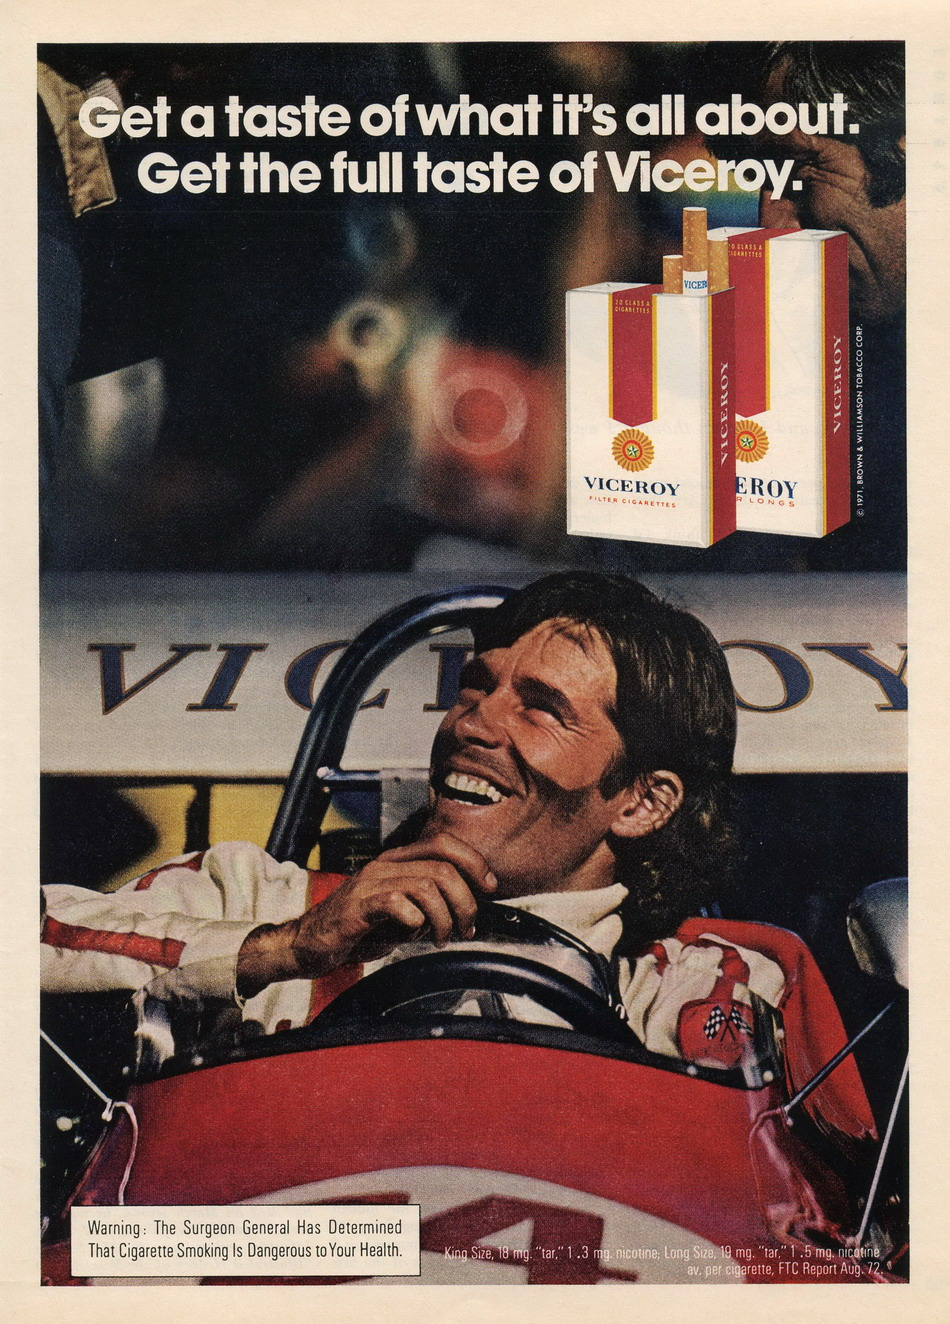 Viceroy Ad -- December 1972